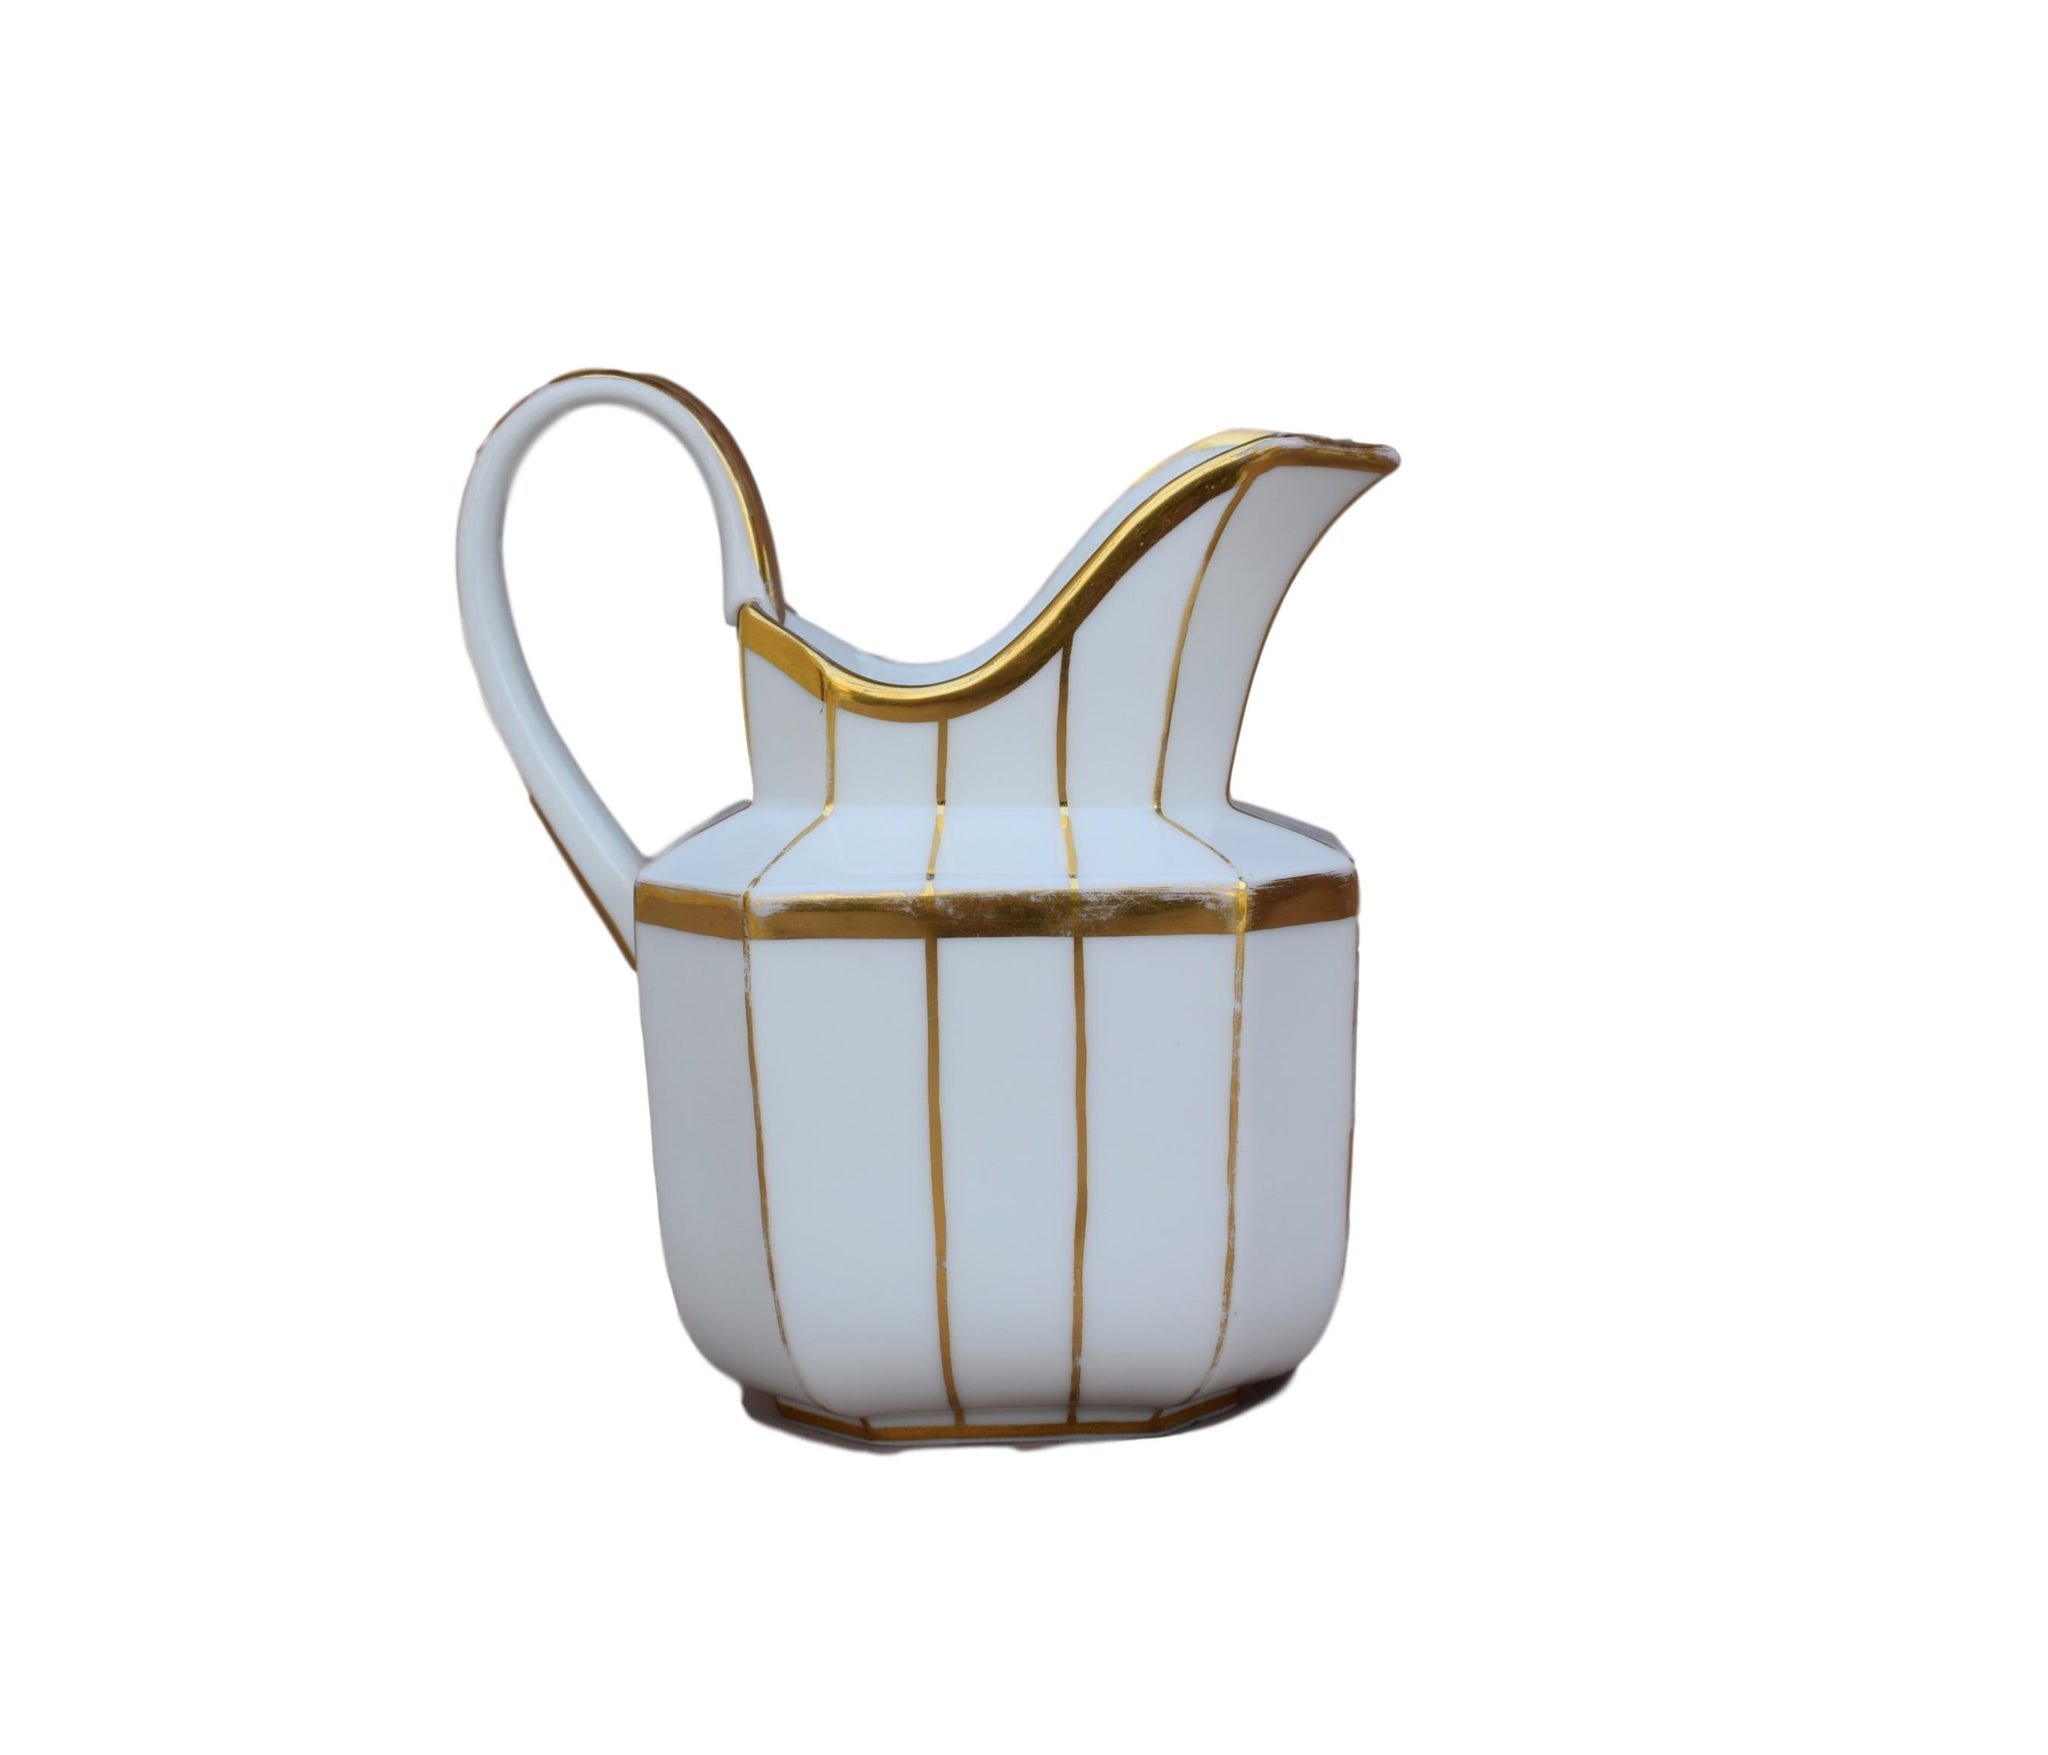 French Antique Vieux Paris Porcelain Milk Jug - White and Gold Bands Louis Philippe Style China - Elegant Chic Porcelain Water Pitche